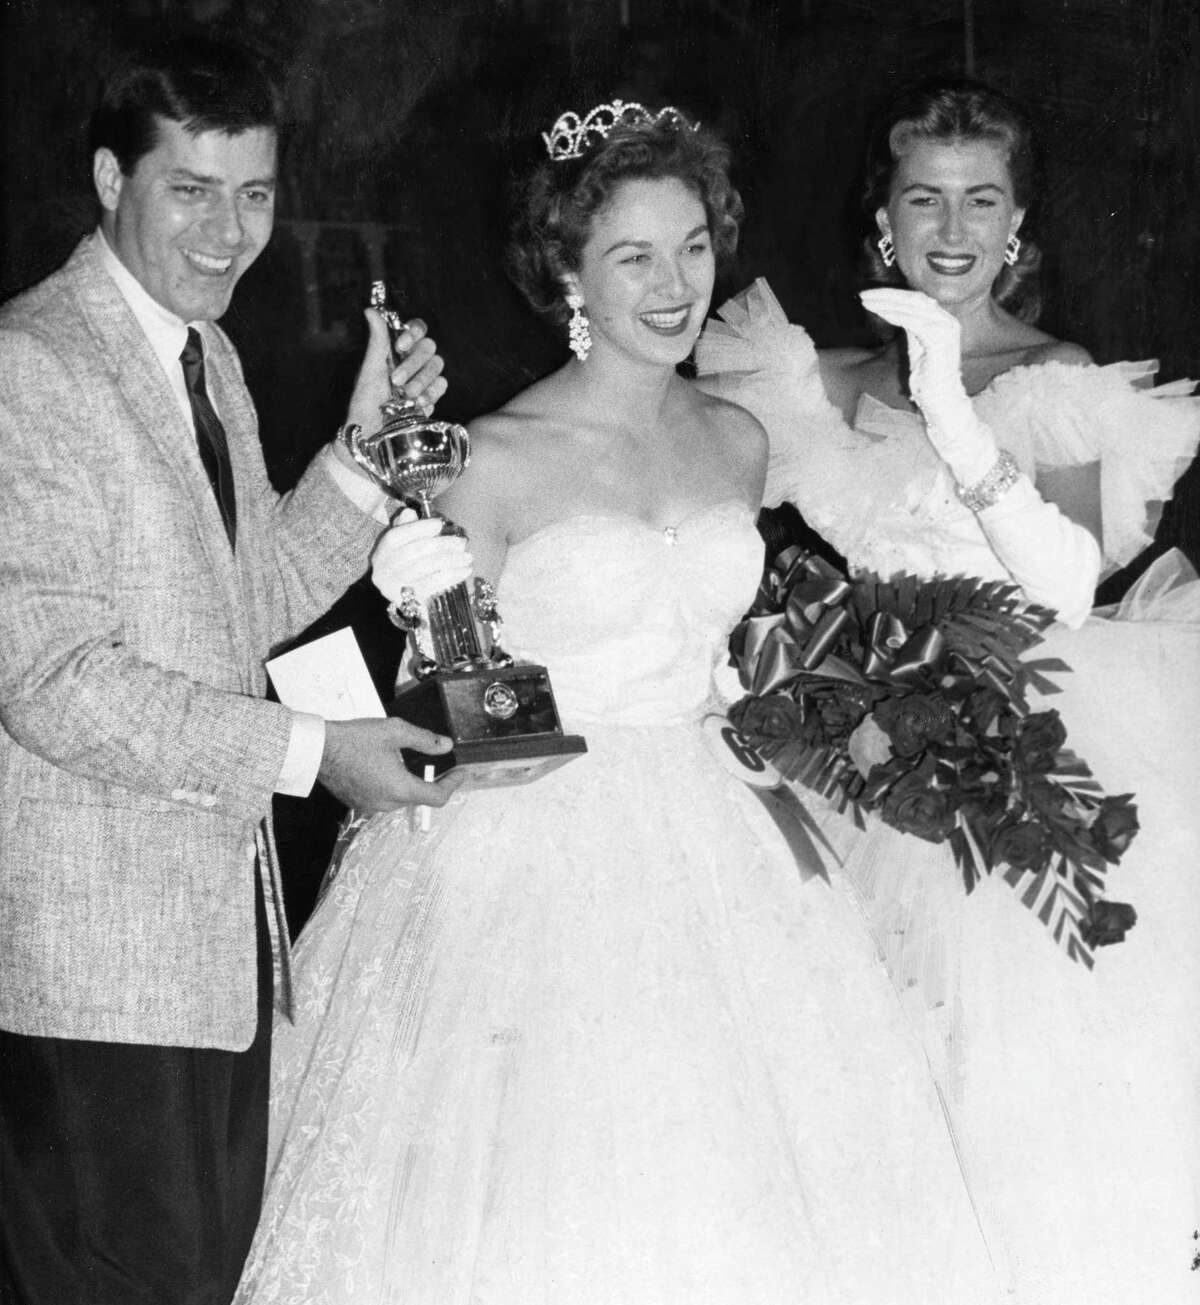 From the July 15, 1957, Houston Post: Miss Houston crowned in Jaycee-sponsored pageant. From left, Jerry Lewis, Gaylynn Baker and Barbara Murray.